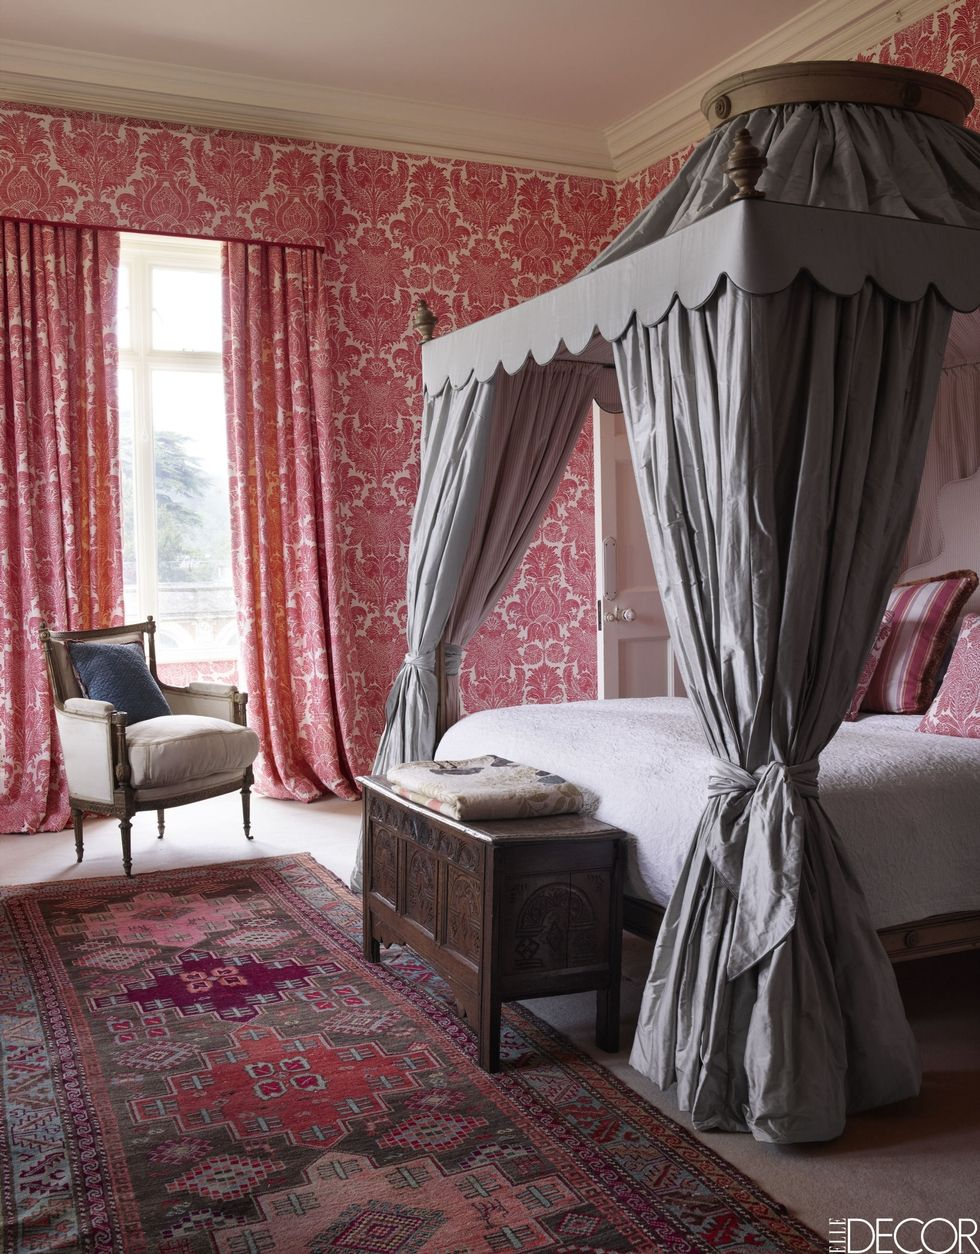 Somerleyton Hall Four Poster Bedroom English Country Estate